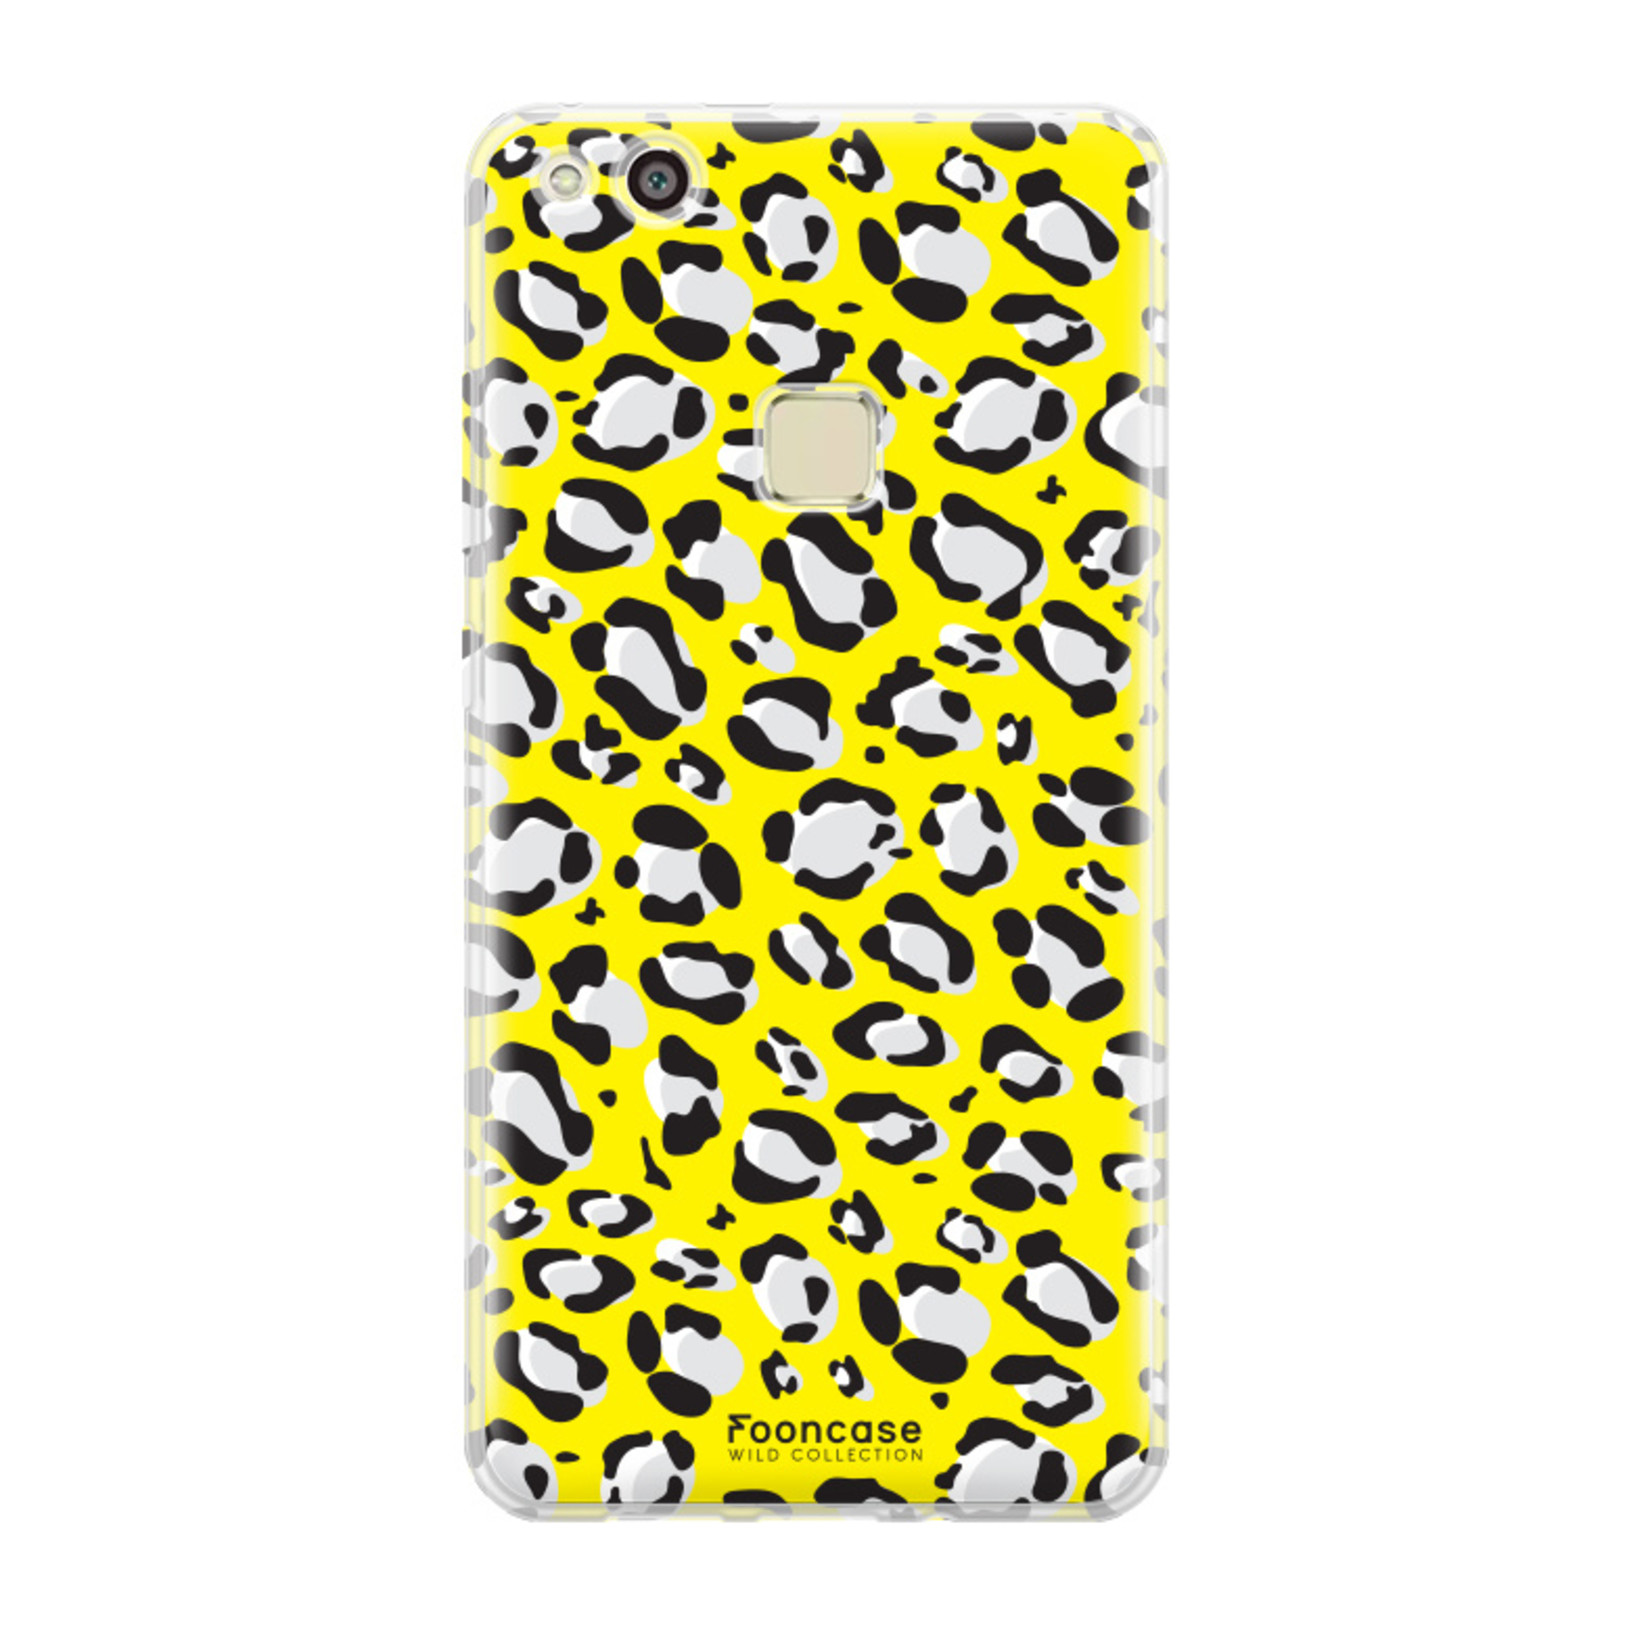 FOONCASE Huawei P10 Lite hoesje TPU Soft Case - Back Cover - WILD COLLECTION / Luipaard / Leopard print / Geel